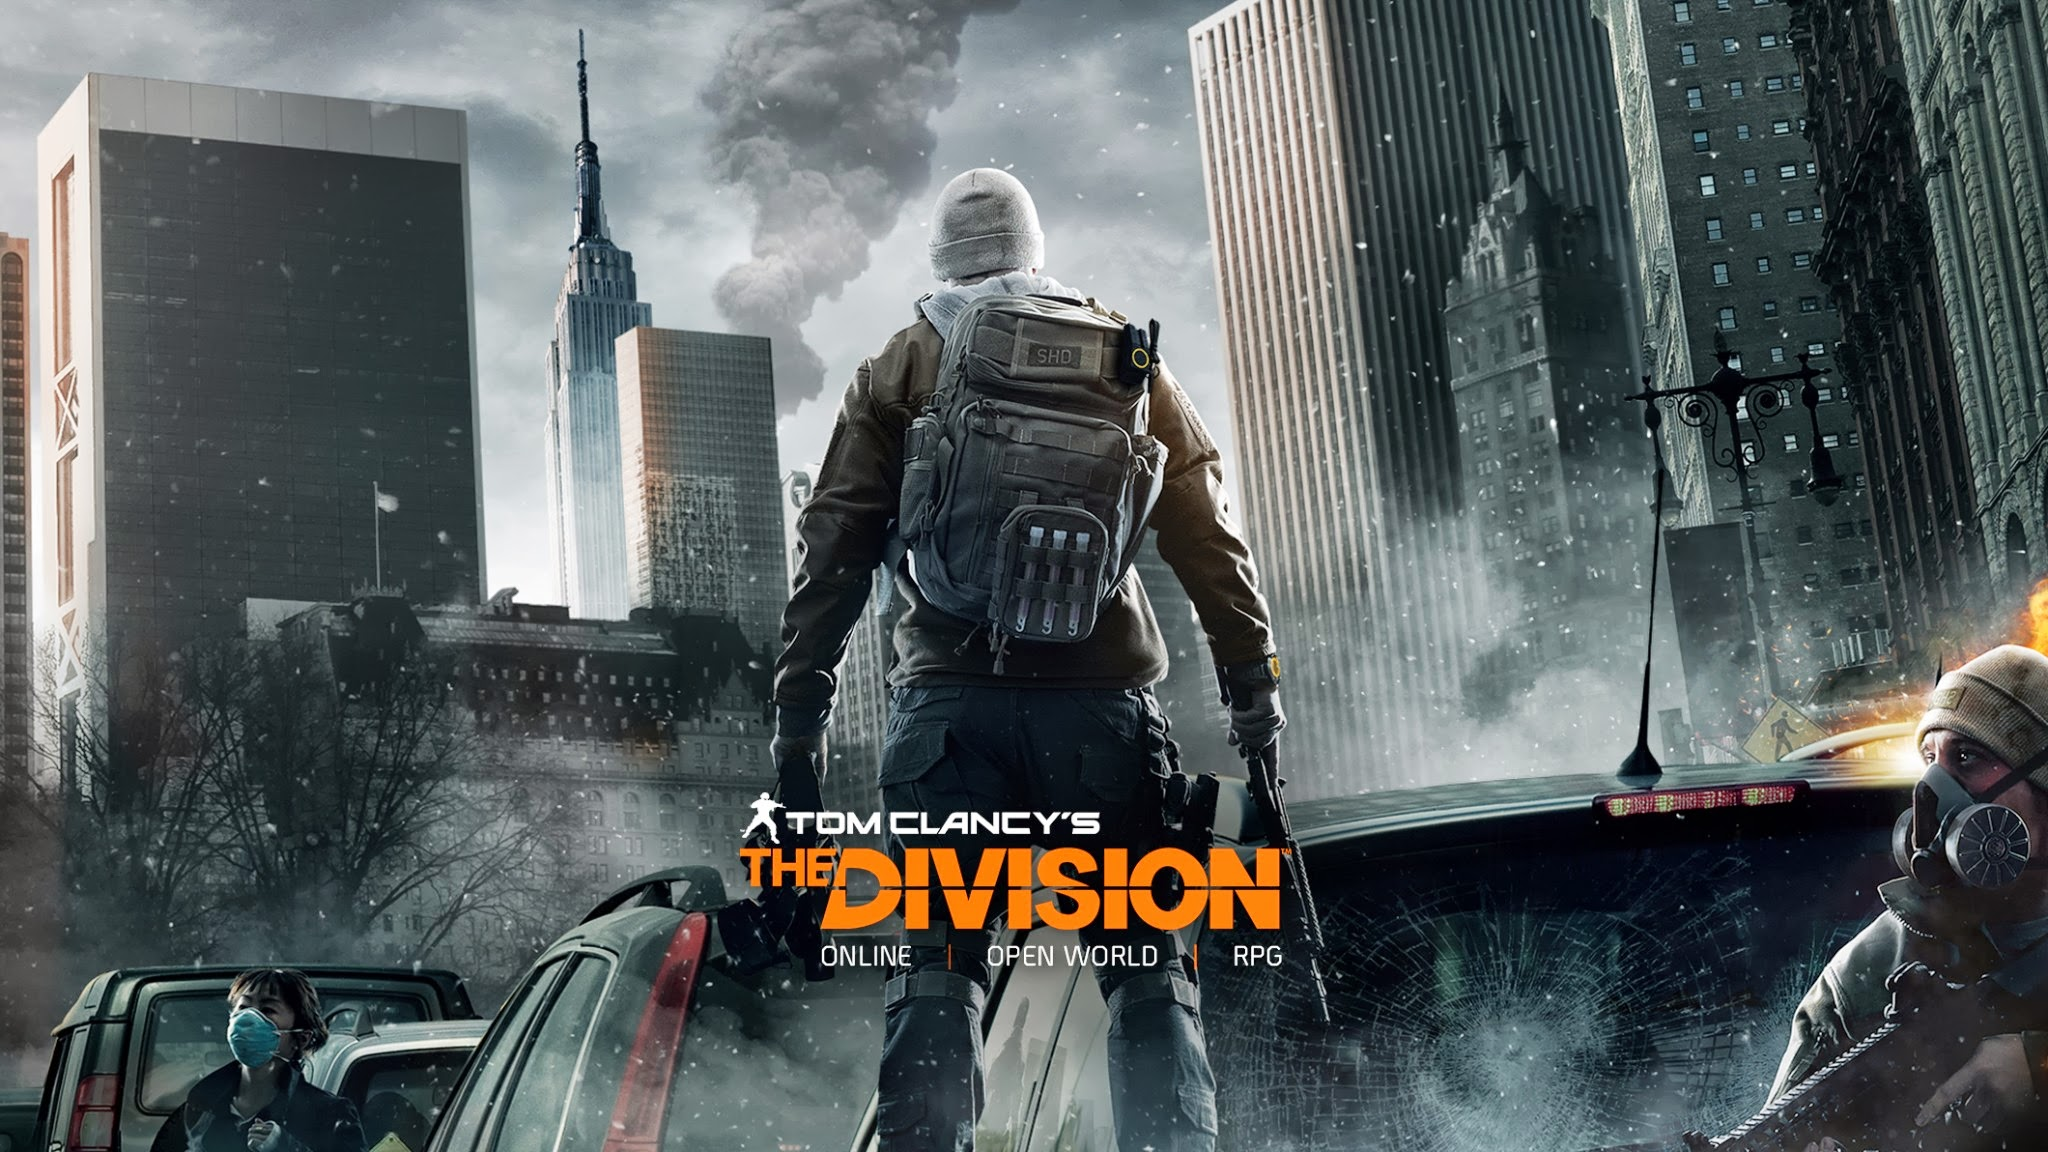 the-division-will-get-first-xbox-one-gameplay-demo-at-gamescom-2014-video-454468-2-tom-clancy-s-the-division-ubisoft-delays-again